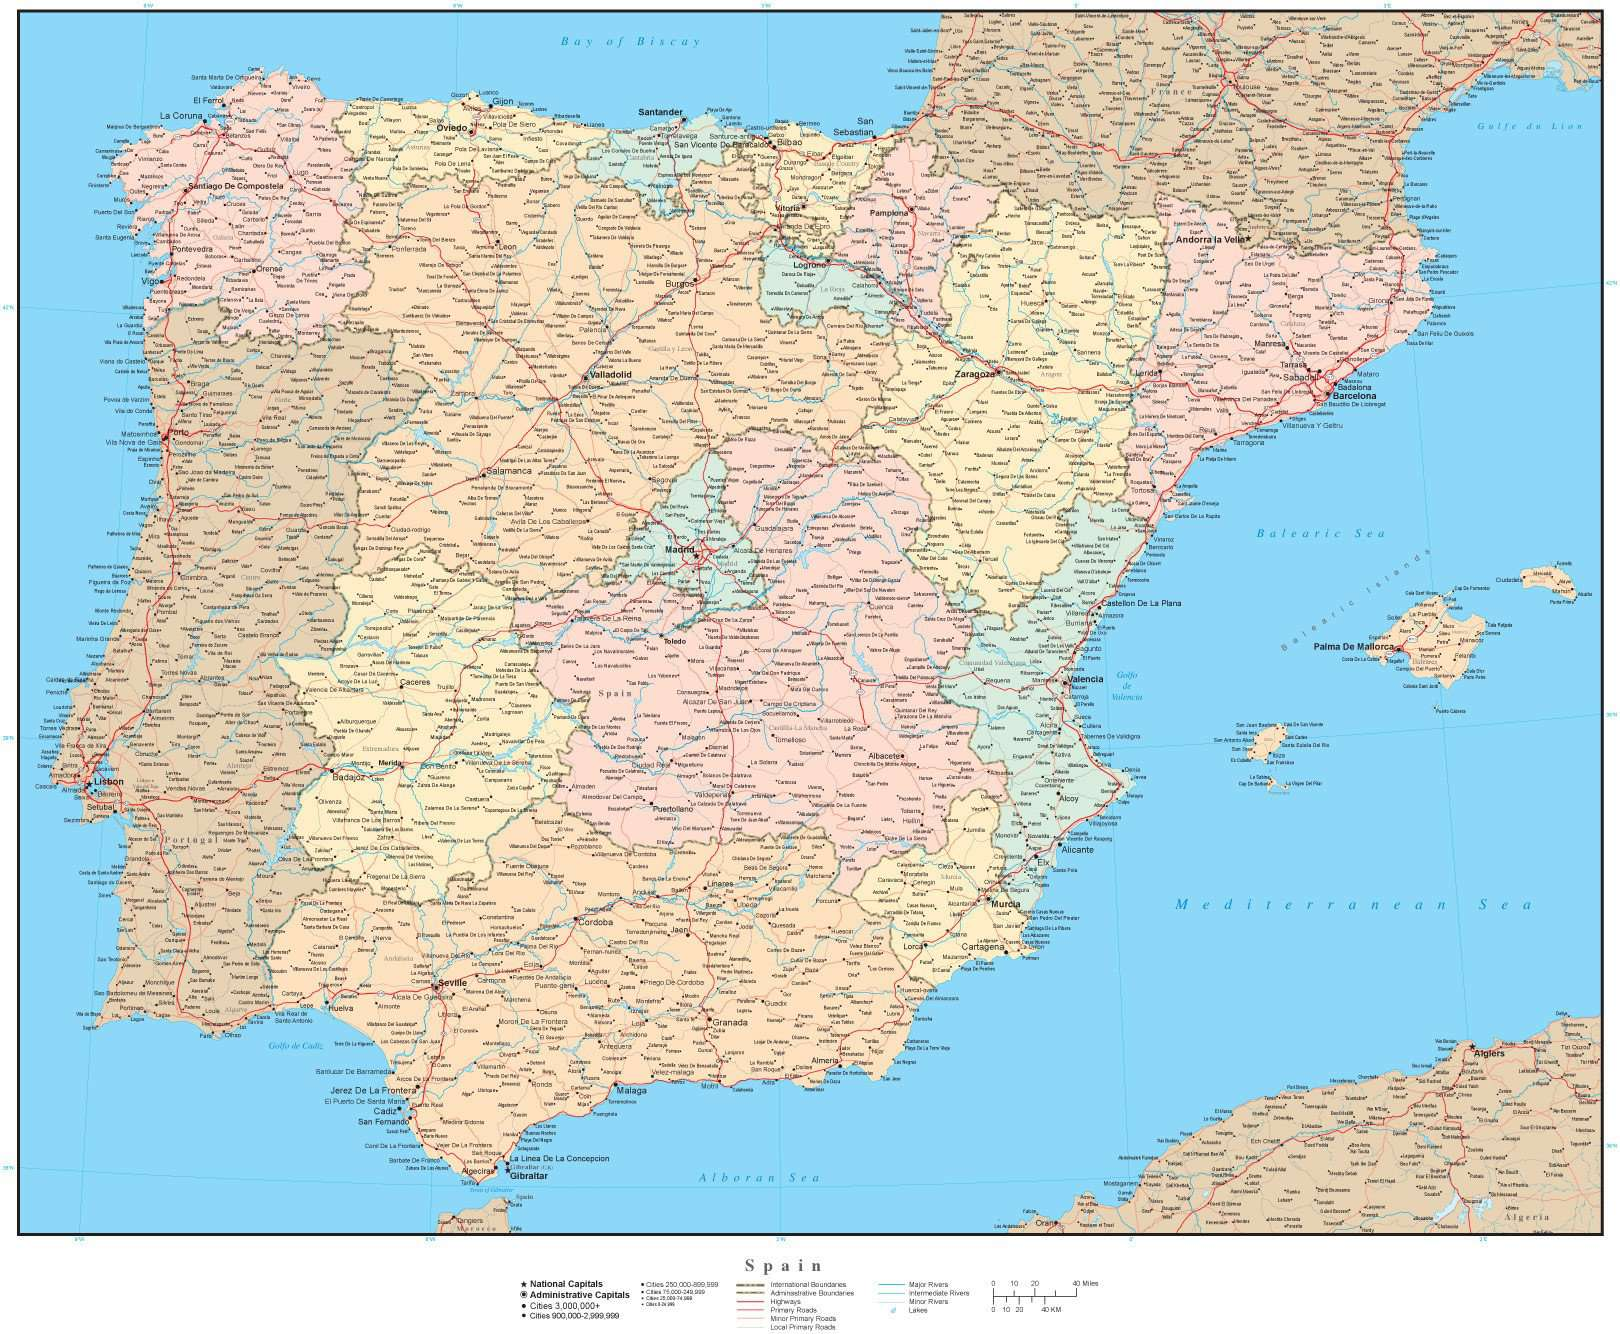 Map Of Portugal And Spain Detailed.Spain Portugal Map High Detail With Internal Administrative Areas